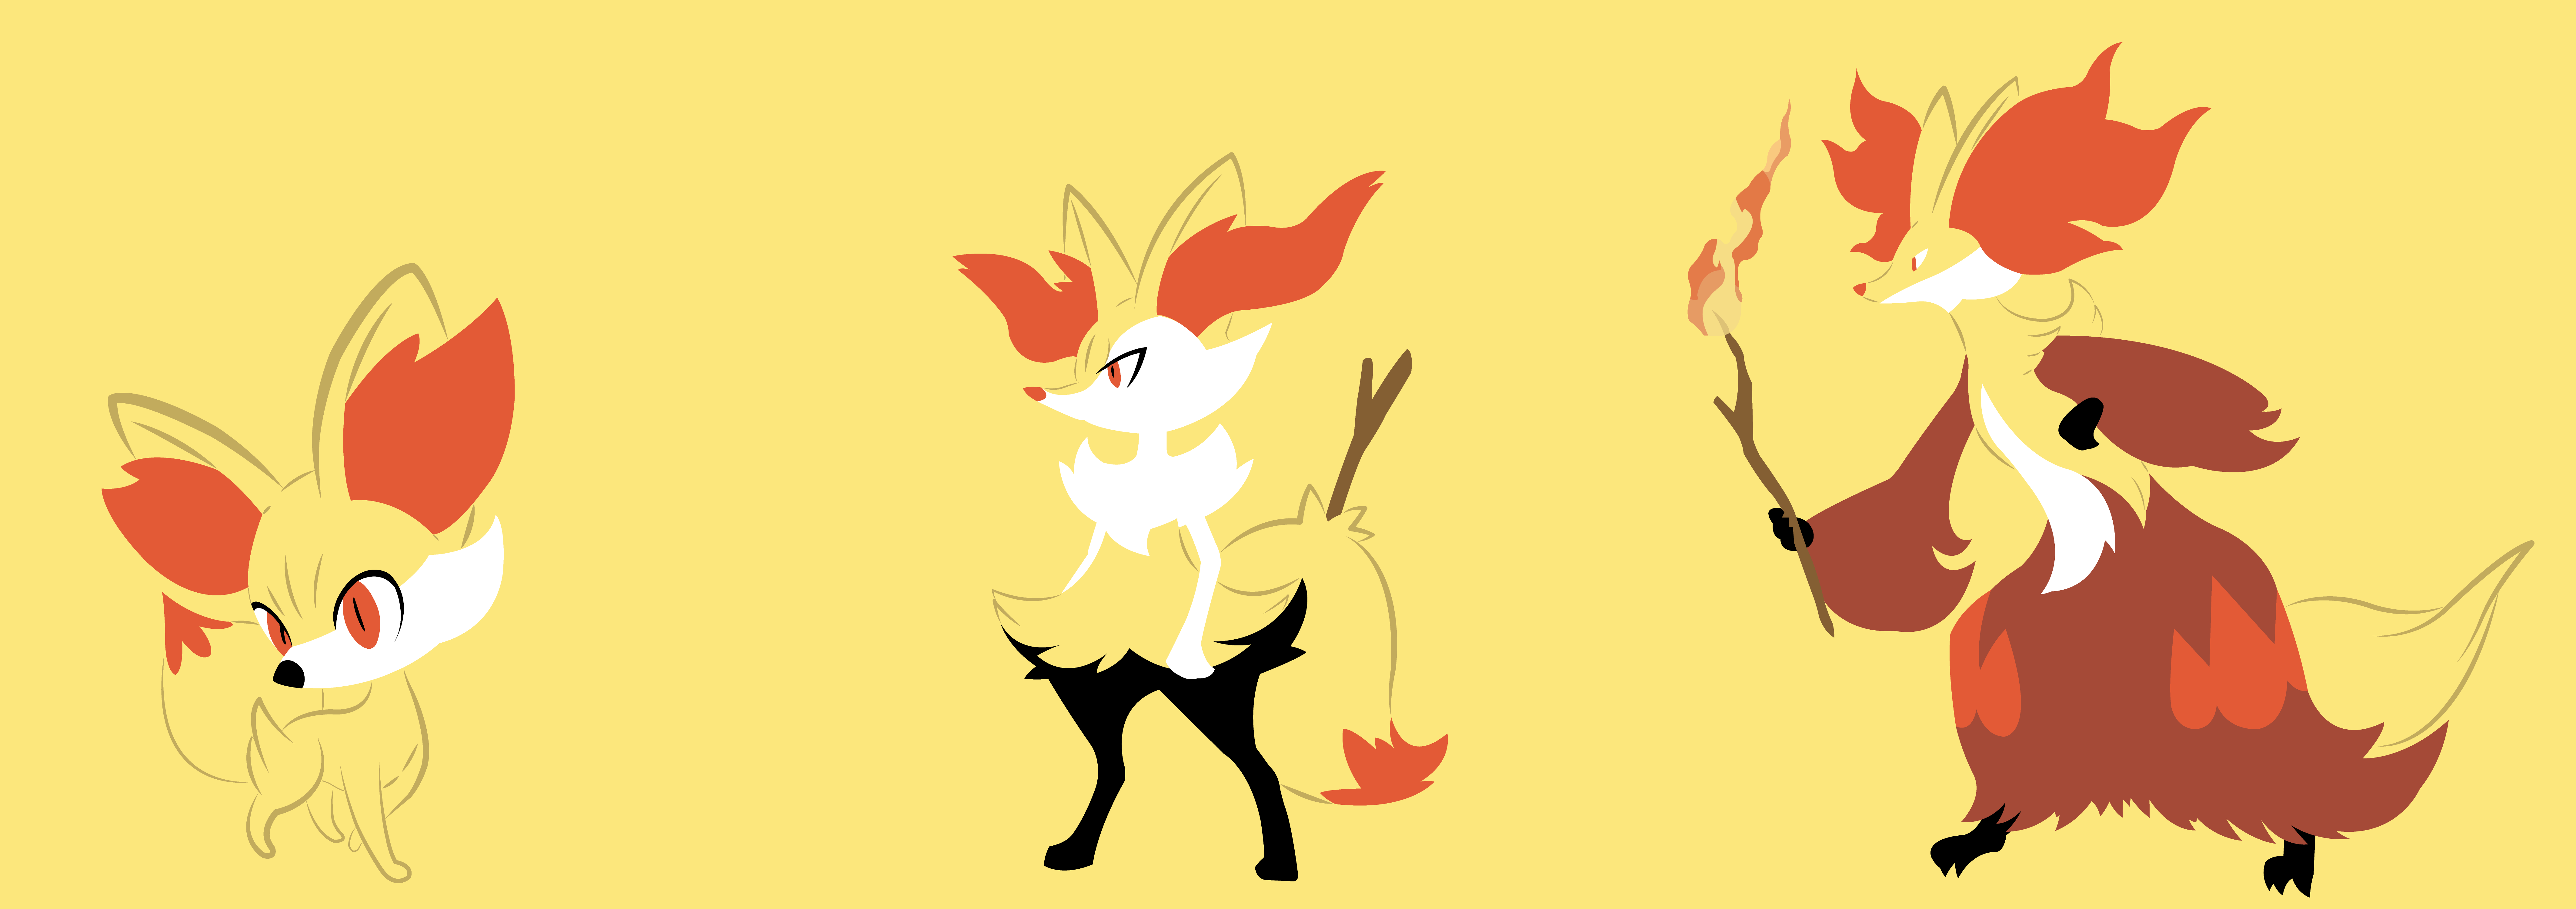 Braixen Wallpaper, PC Braixen Wallpaper Most Beautiful Images (Of ...